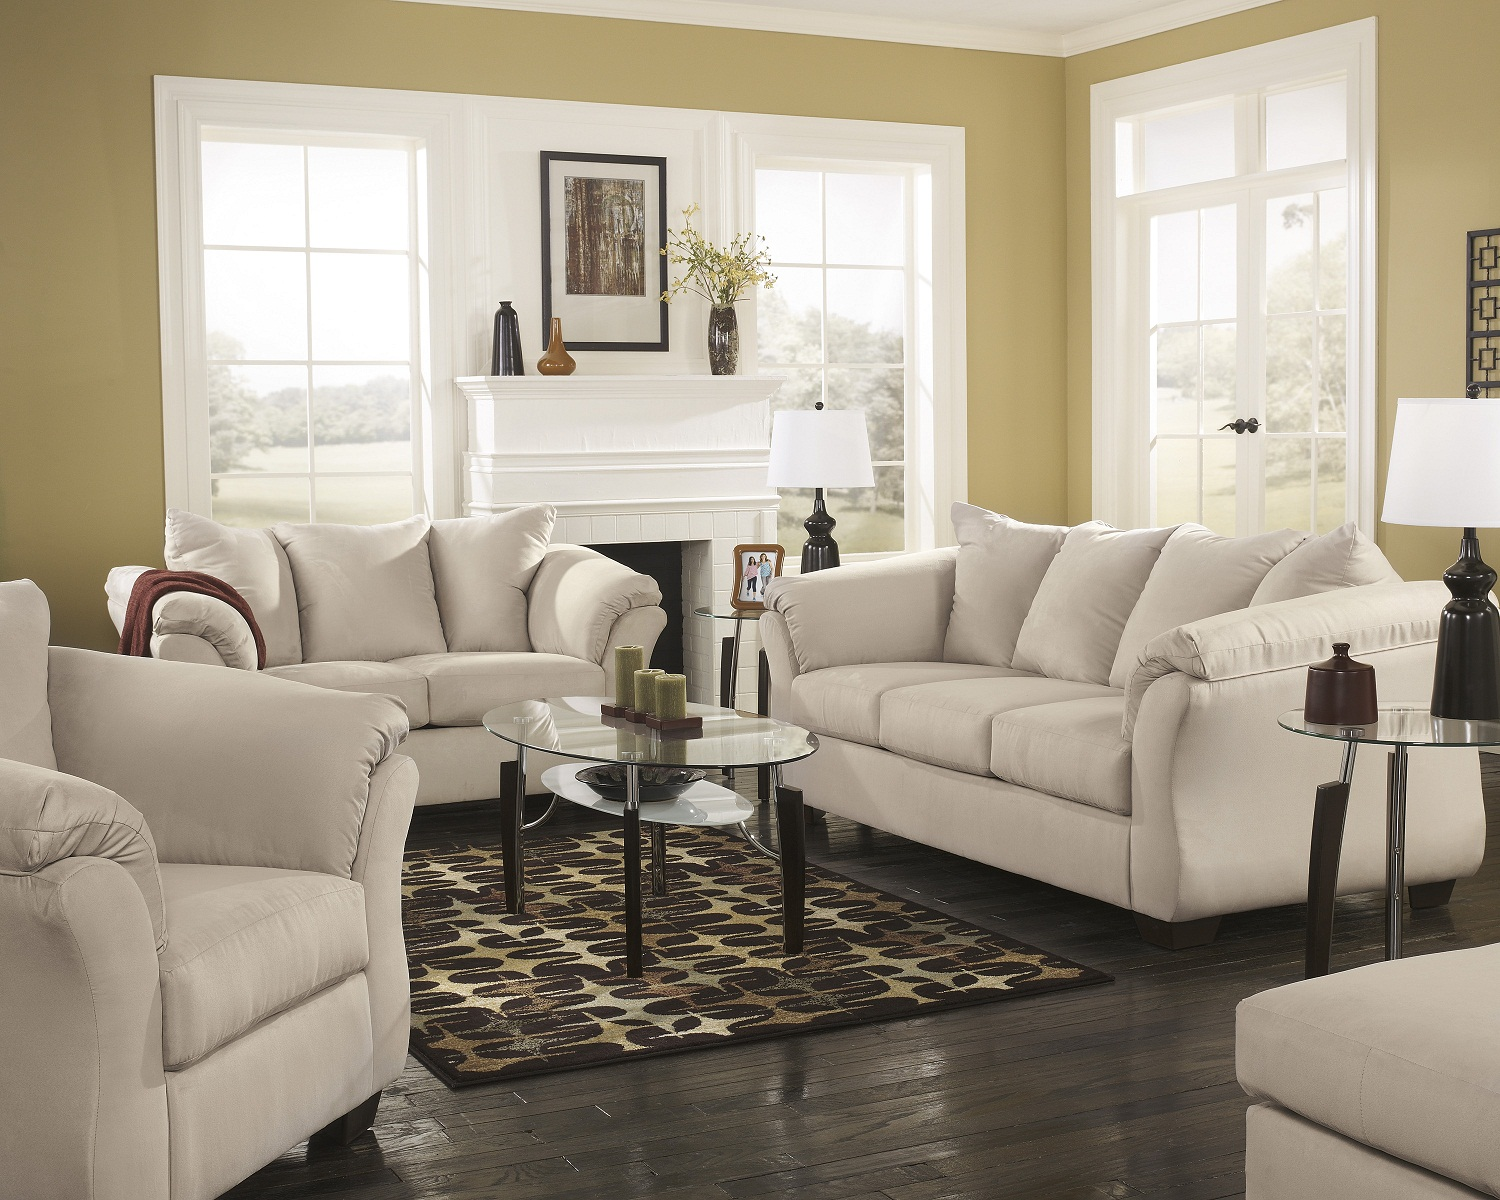 4 piece darcy living room set in stone all living room for 4 piece living room set